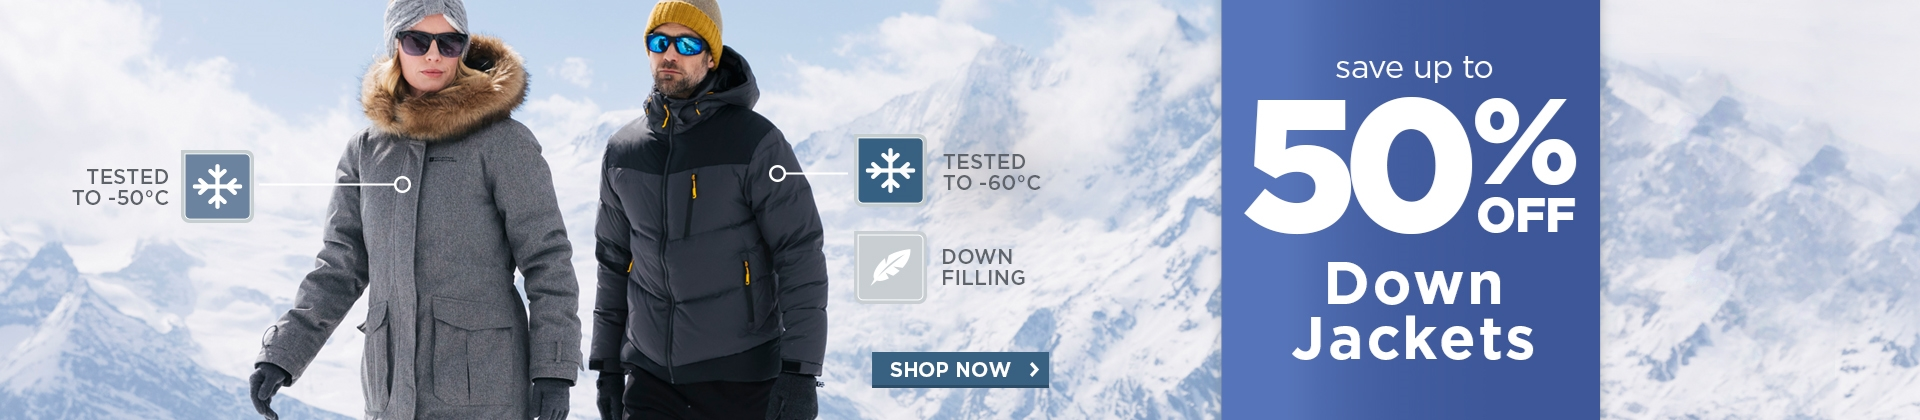 H1: Down Jackets